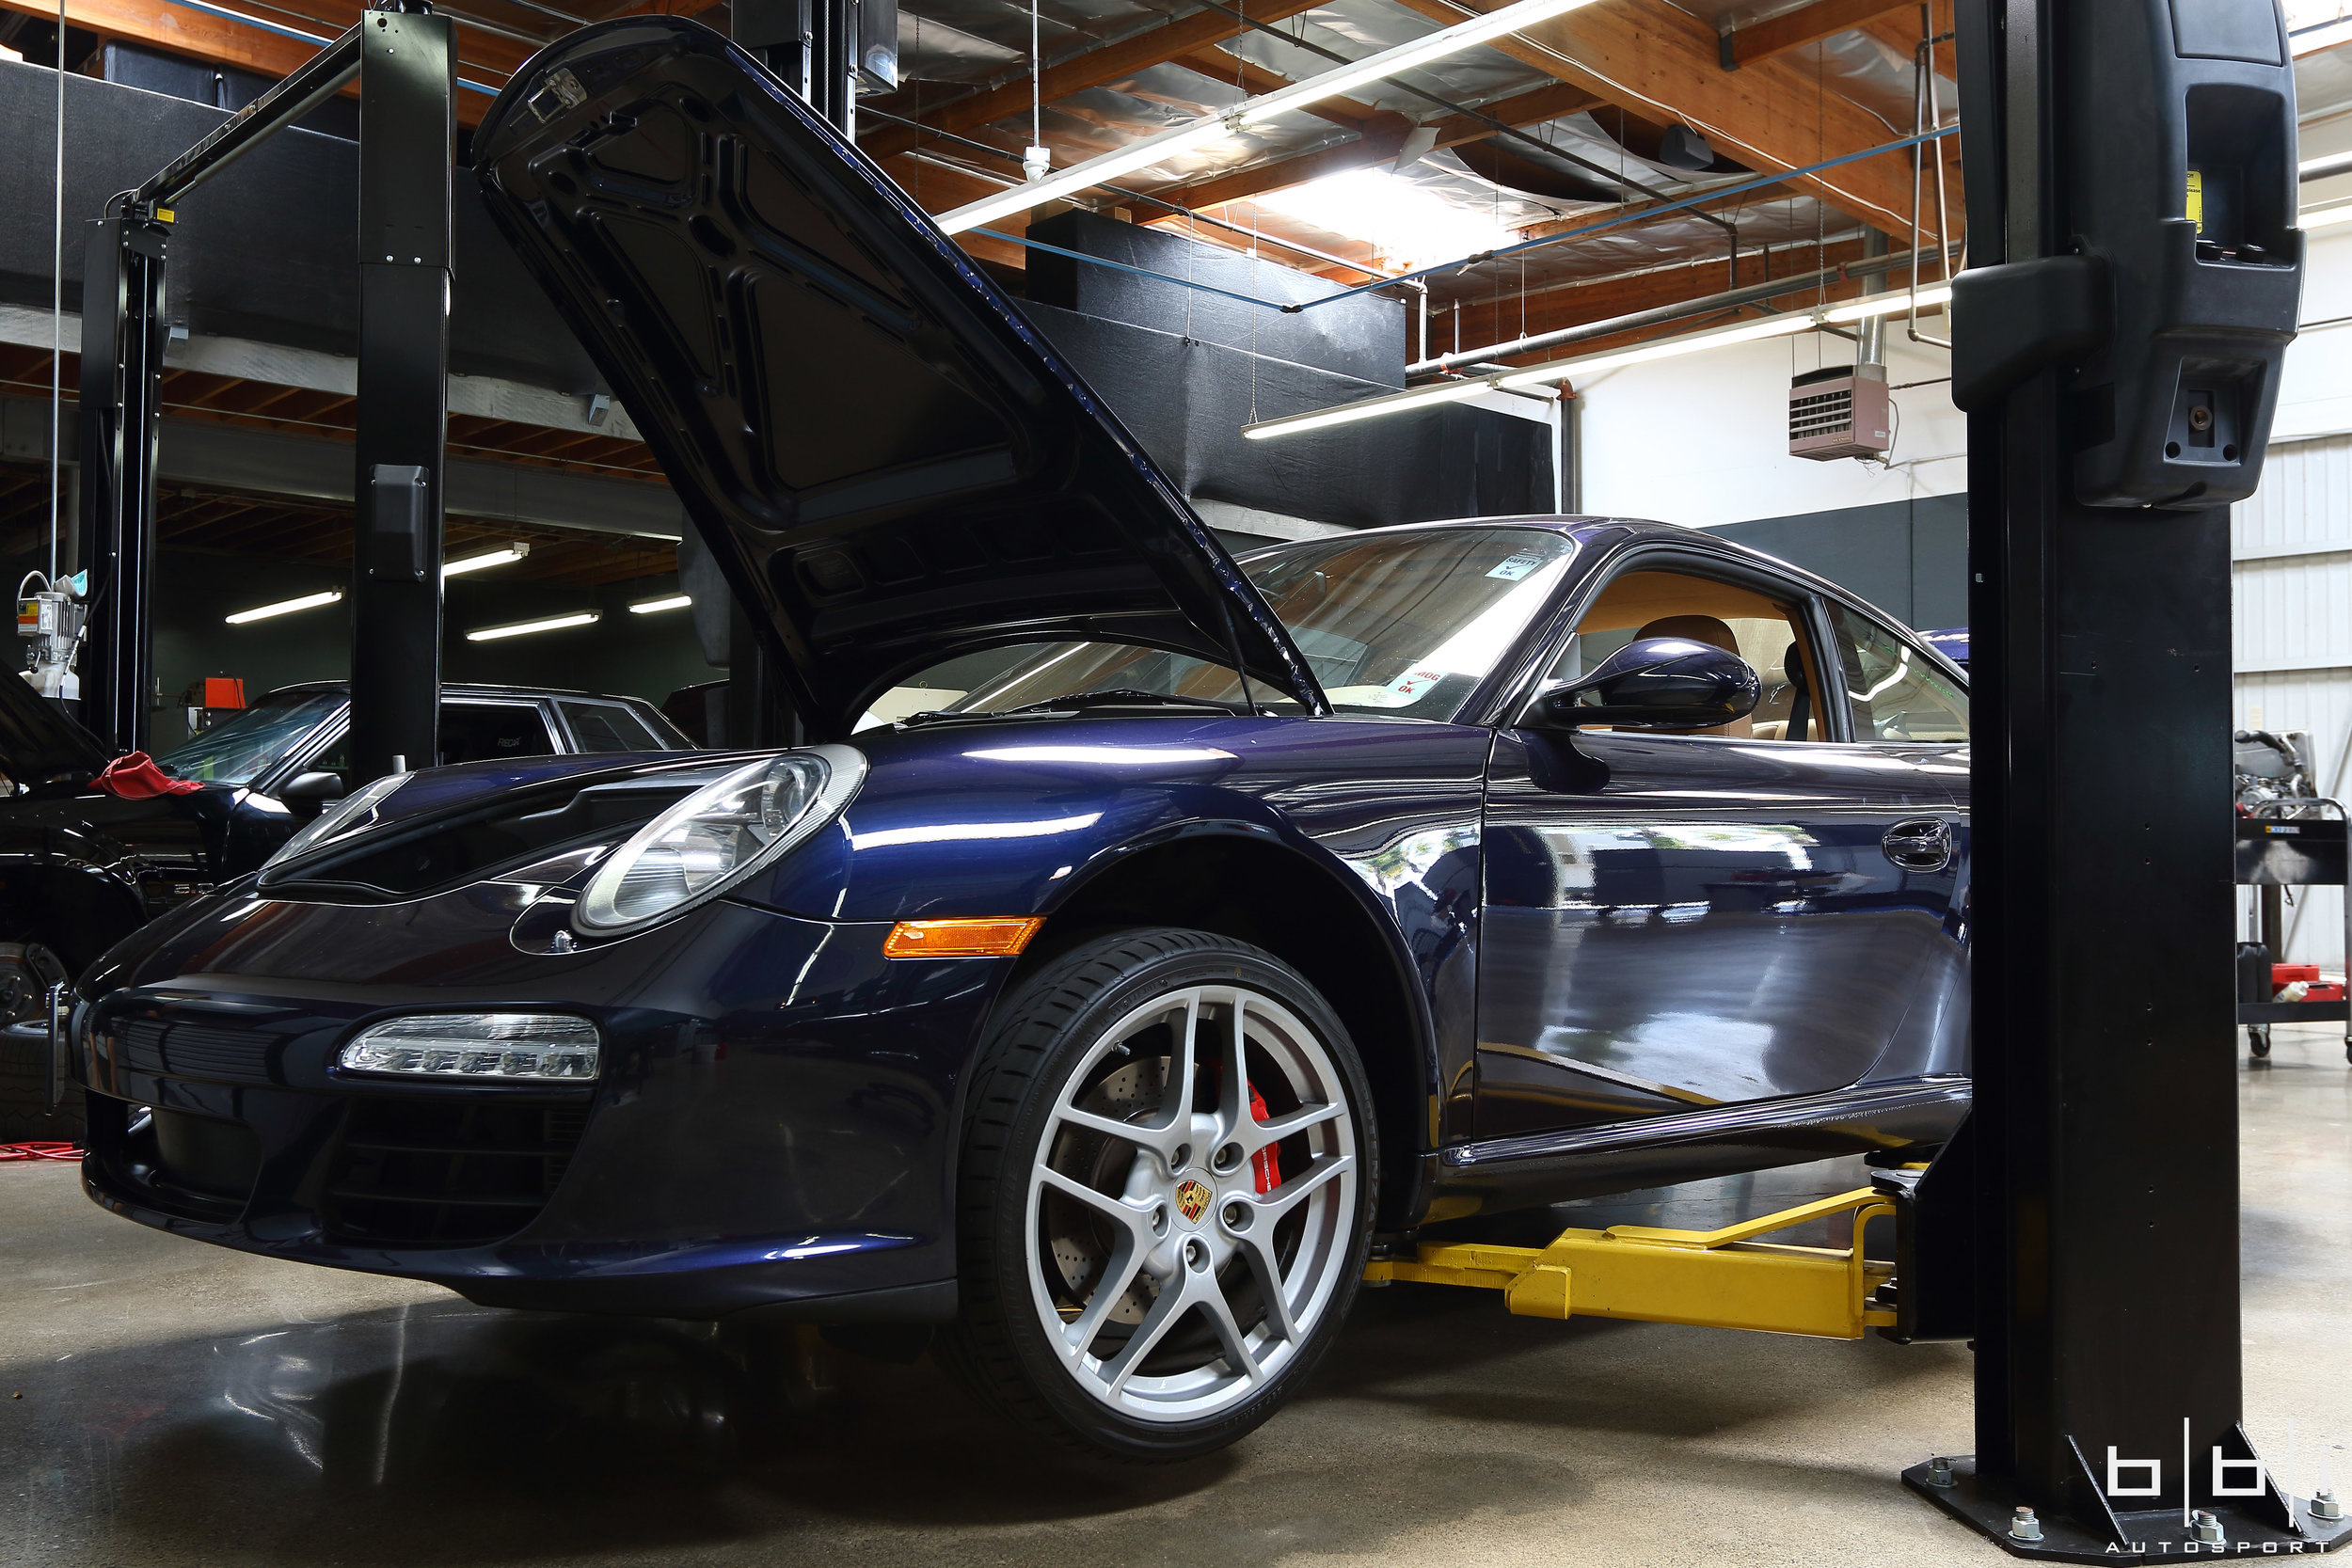 With a life long dream of owning a Porsche, our client was torn between the 997 Carrera and 987 Cayman for his first Porsche. We offered to lend our expertise and help make an informed purchasing decision on whichever platform he decides to go with. After a long search for the right car at the right price, he had his eyes set on this clean low mileage Porsche 997.2 Carrera S PDK and brought it to our service department so that we can perform a PPI (pre-purchase inspection) to uncover any possible hidden flaws or issues. We don't think you can go wrong with a 997.2 Carrera S PDK as a first Porsche and everything appears to be good. Here are some pictures of the car getting an inspection in our service department.